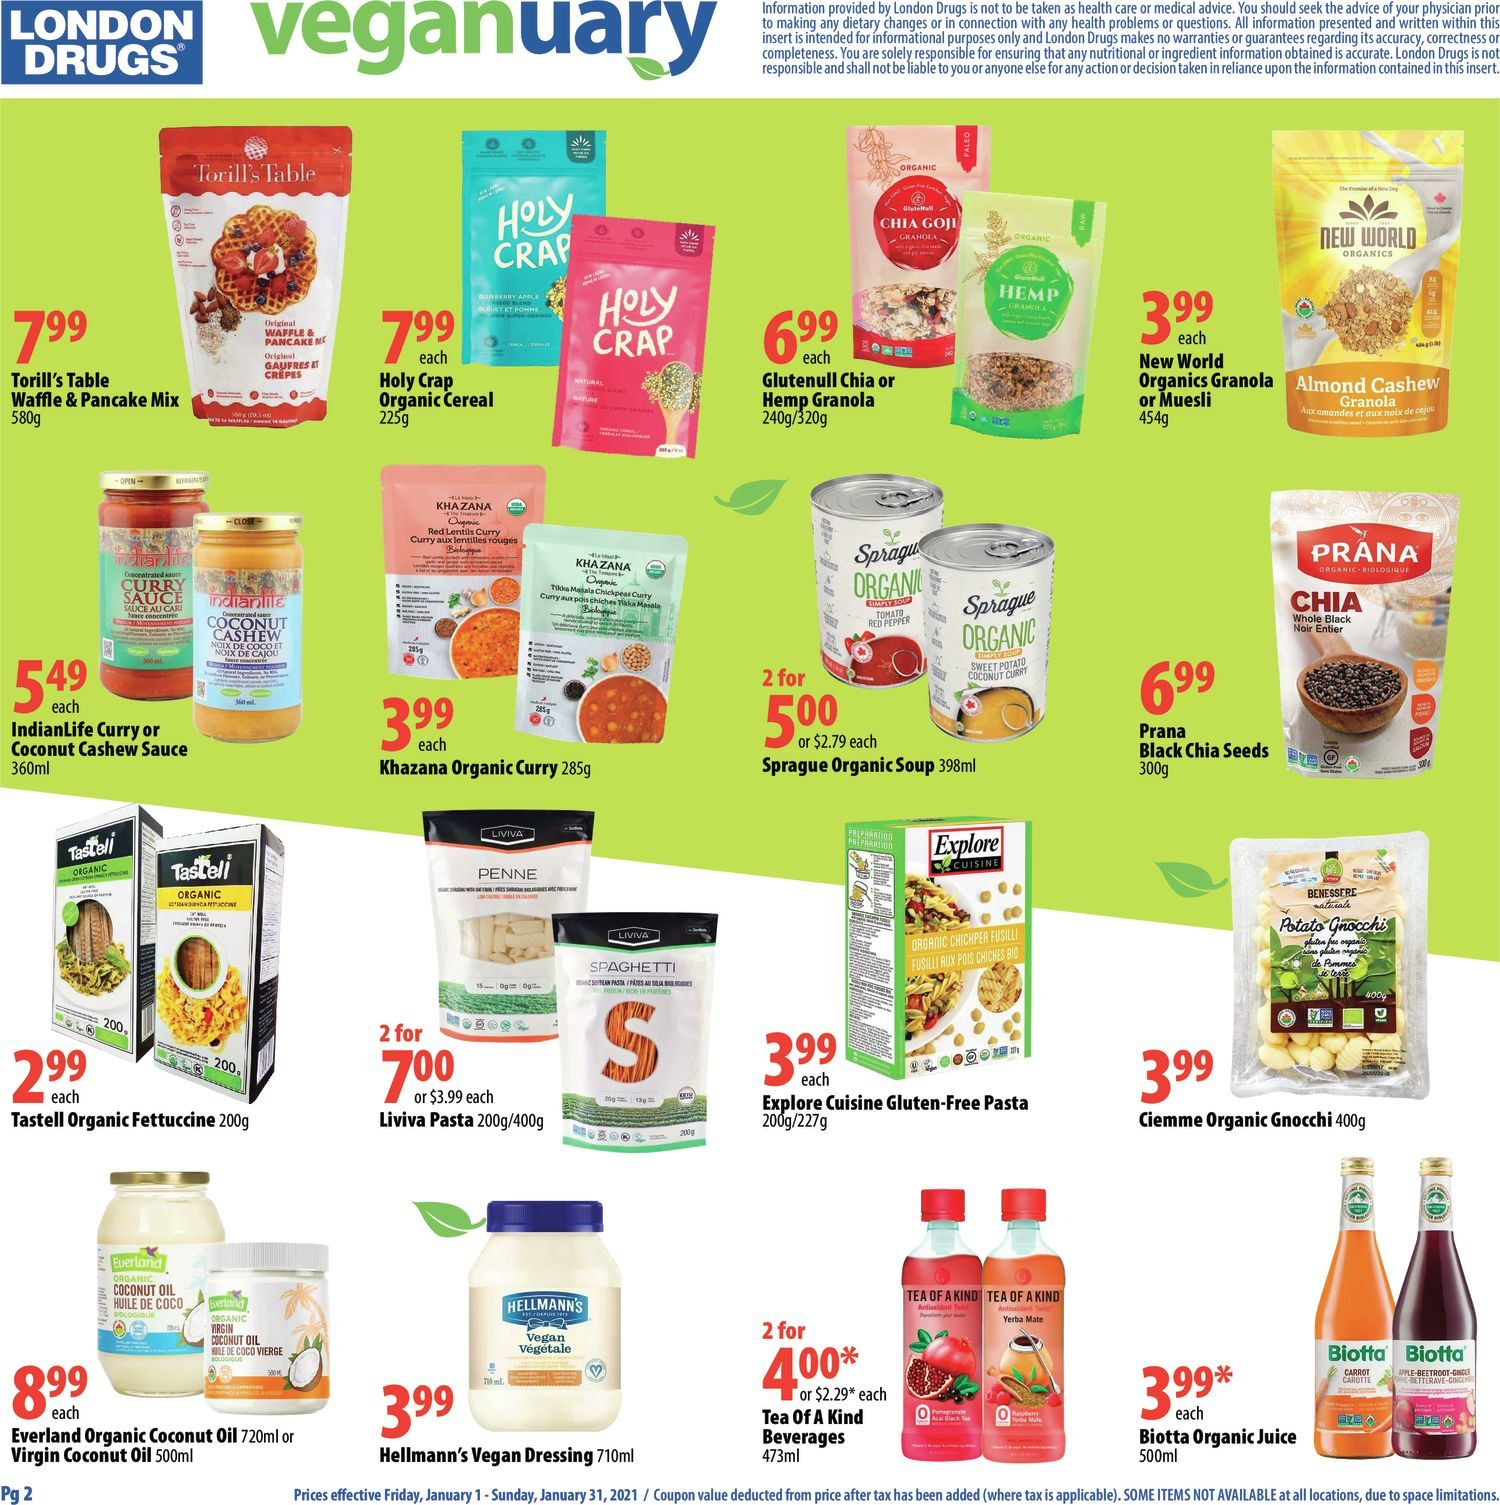 London Drugs - Veganuary - Page 4